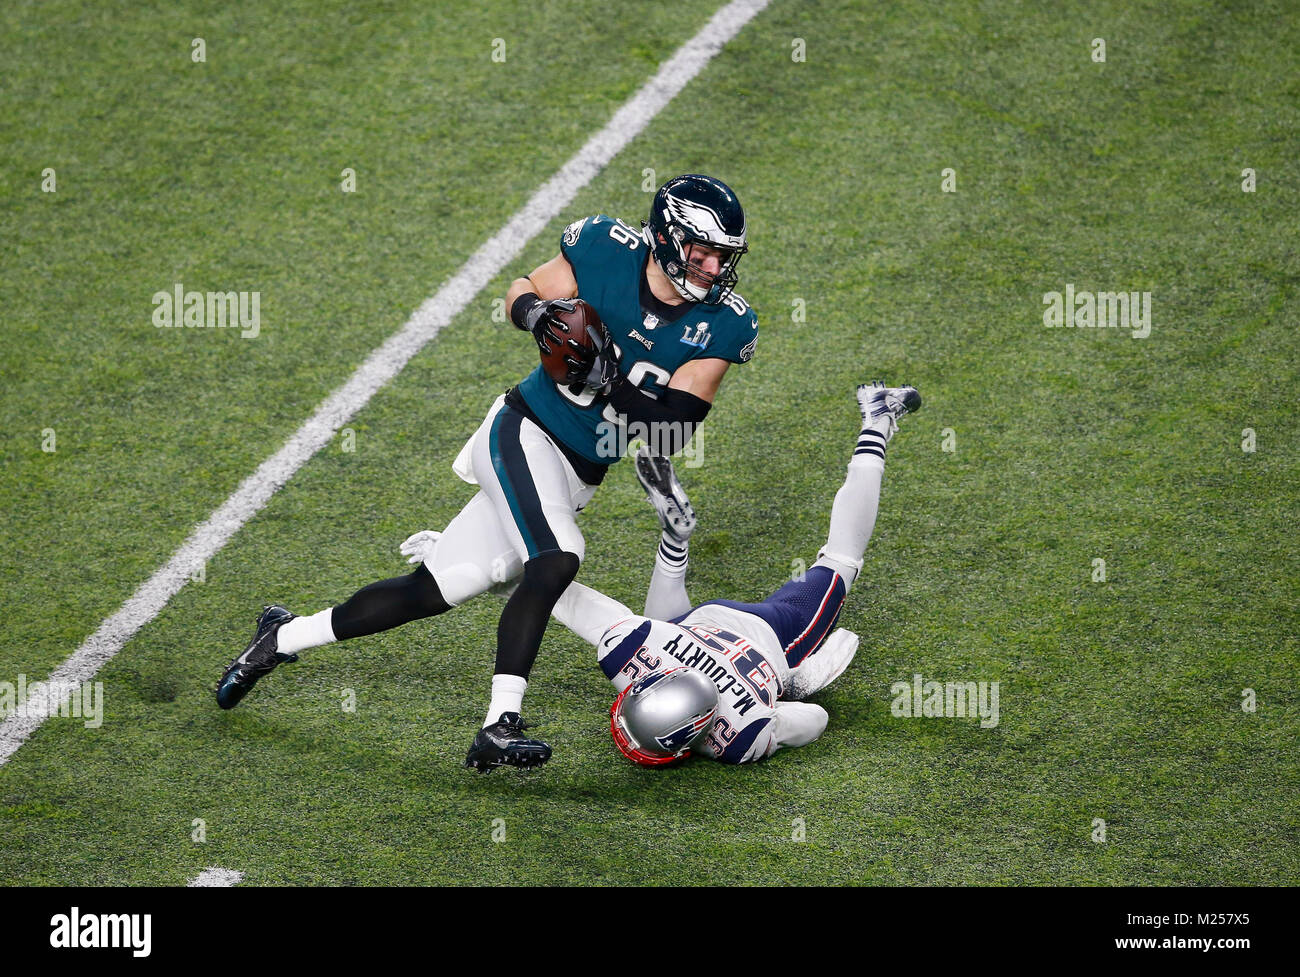 b1499138a09 Philadelphia Eagles tight end Zach Ertz (86) makes a catch and dives for a  touchdown in the fourth quarter during Super Bowl LII between the  Philadelphia ...